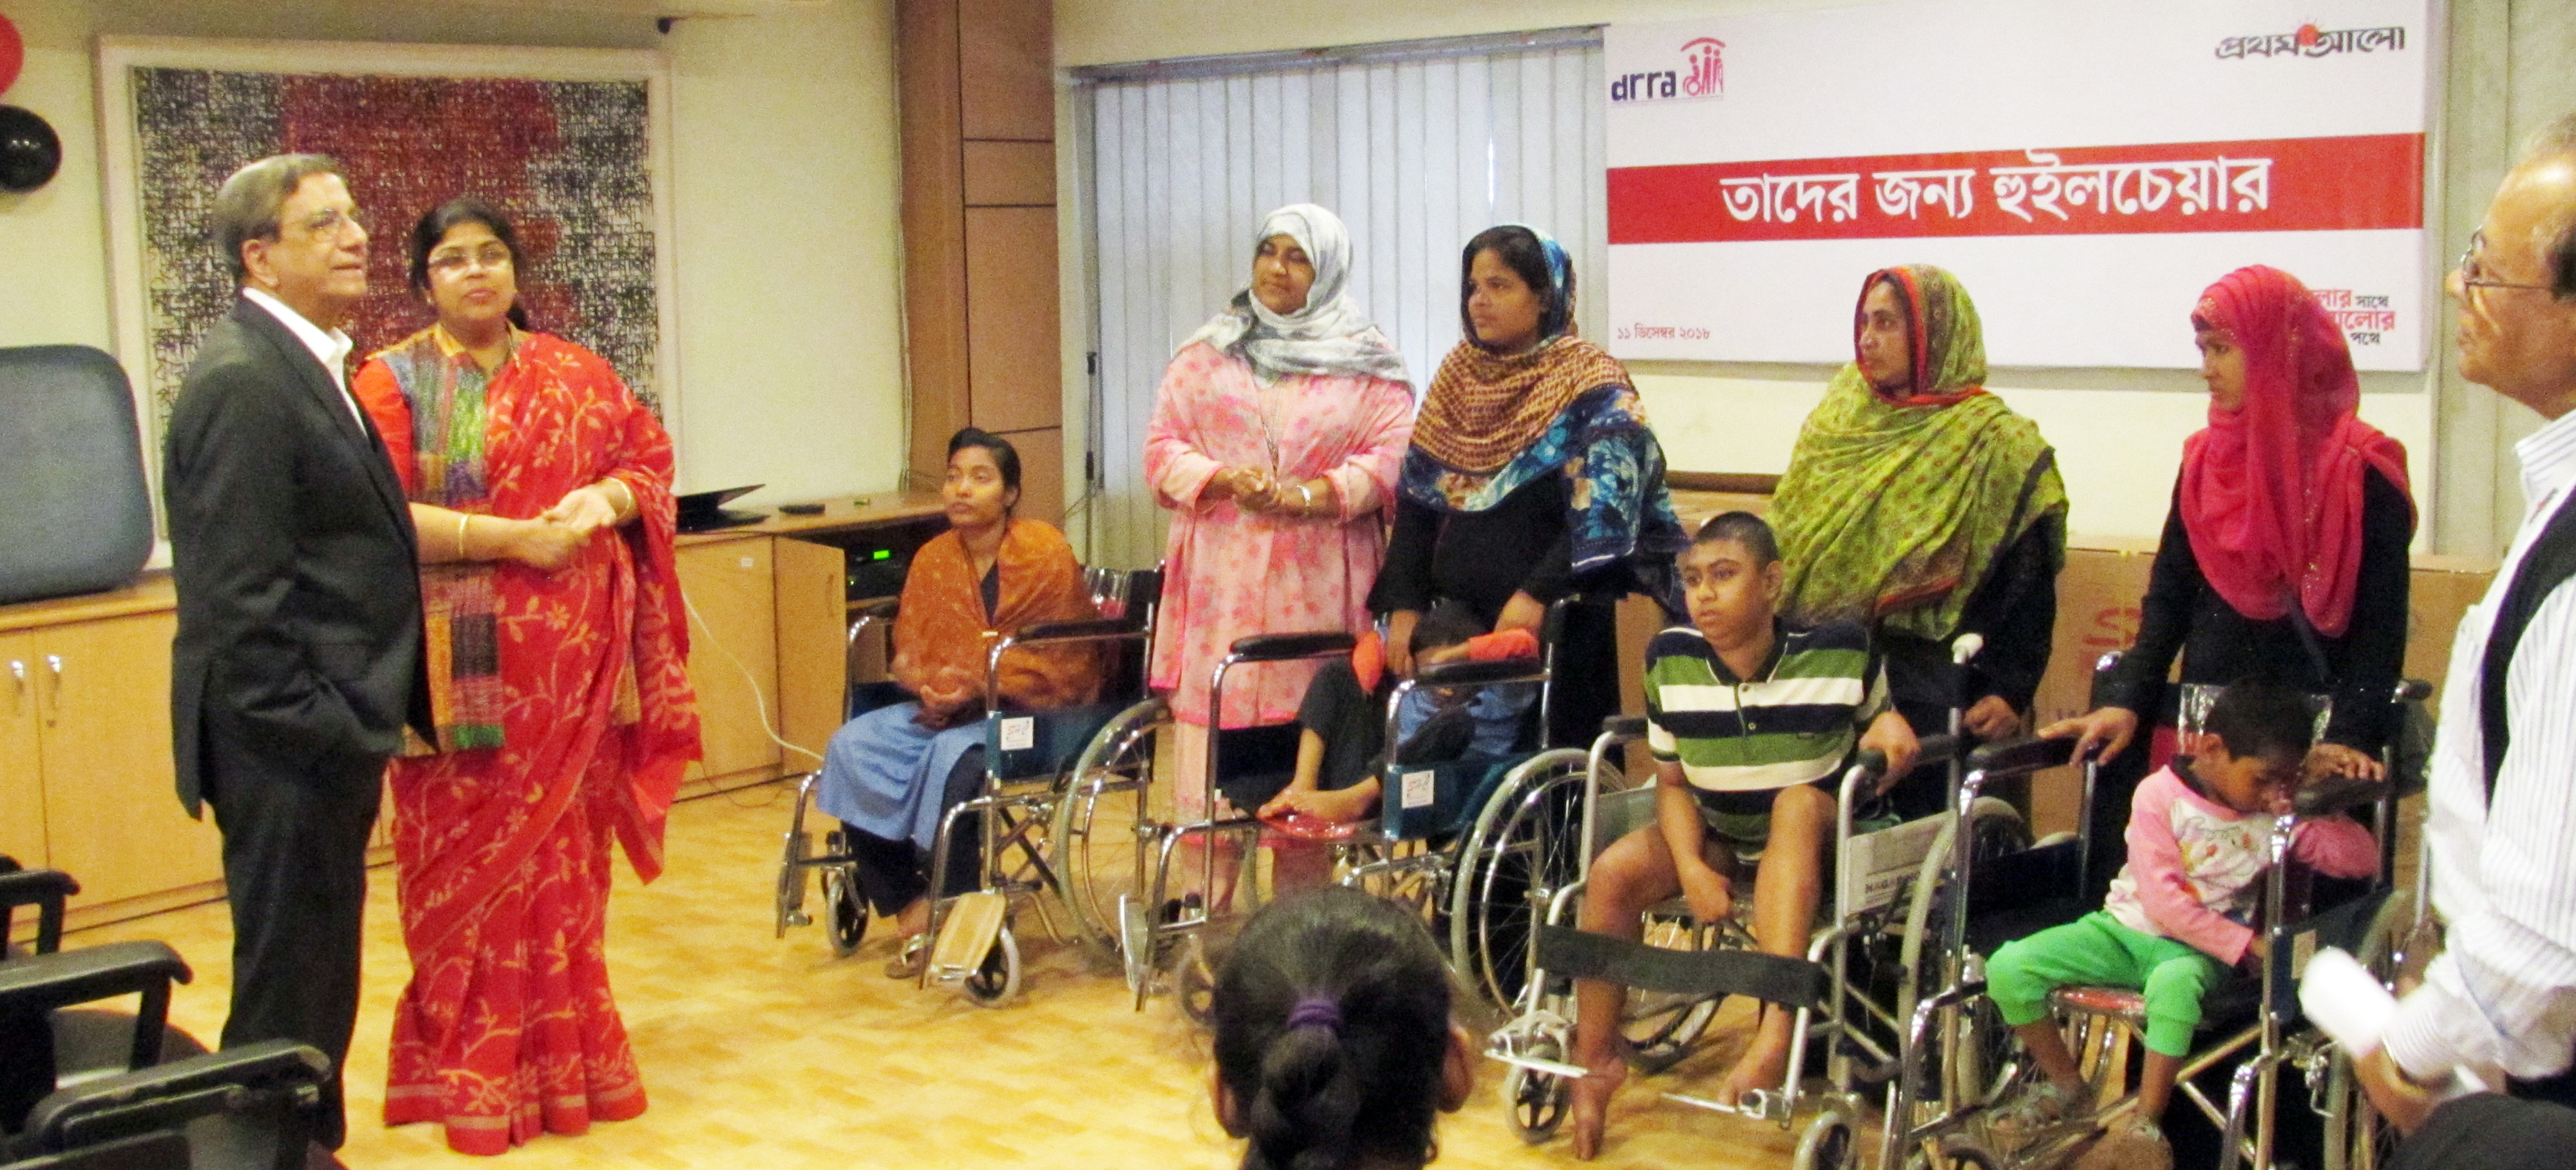 DRRA received 11 wheel chairs from Prothom Alo